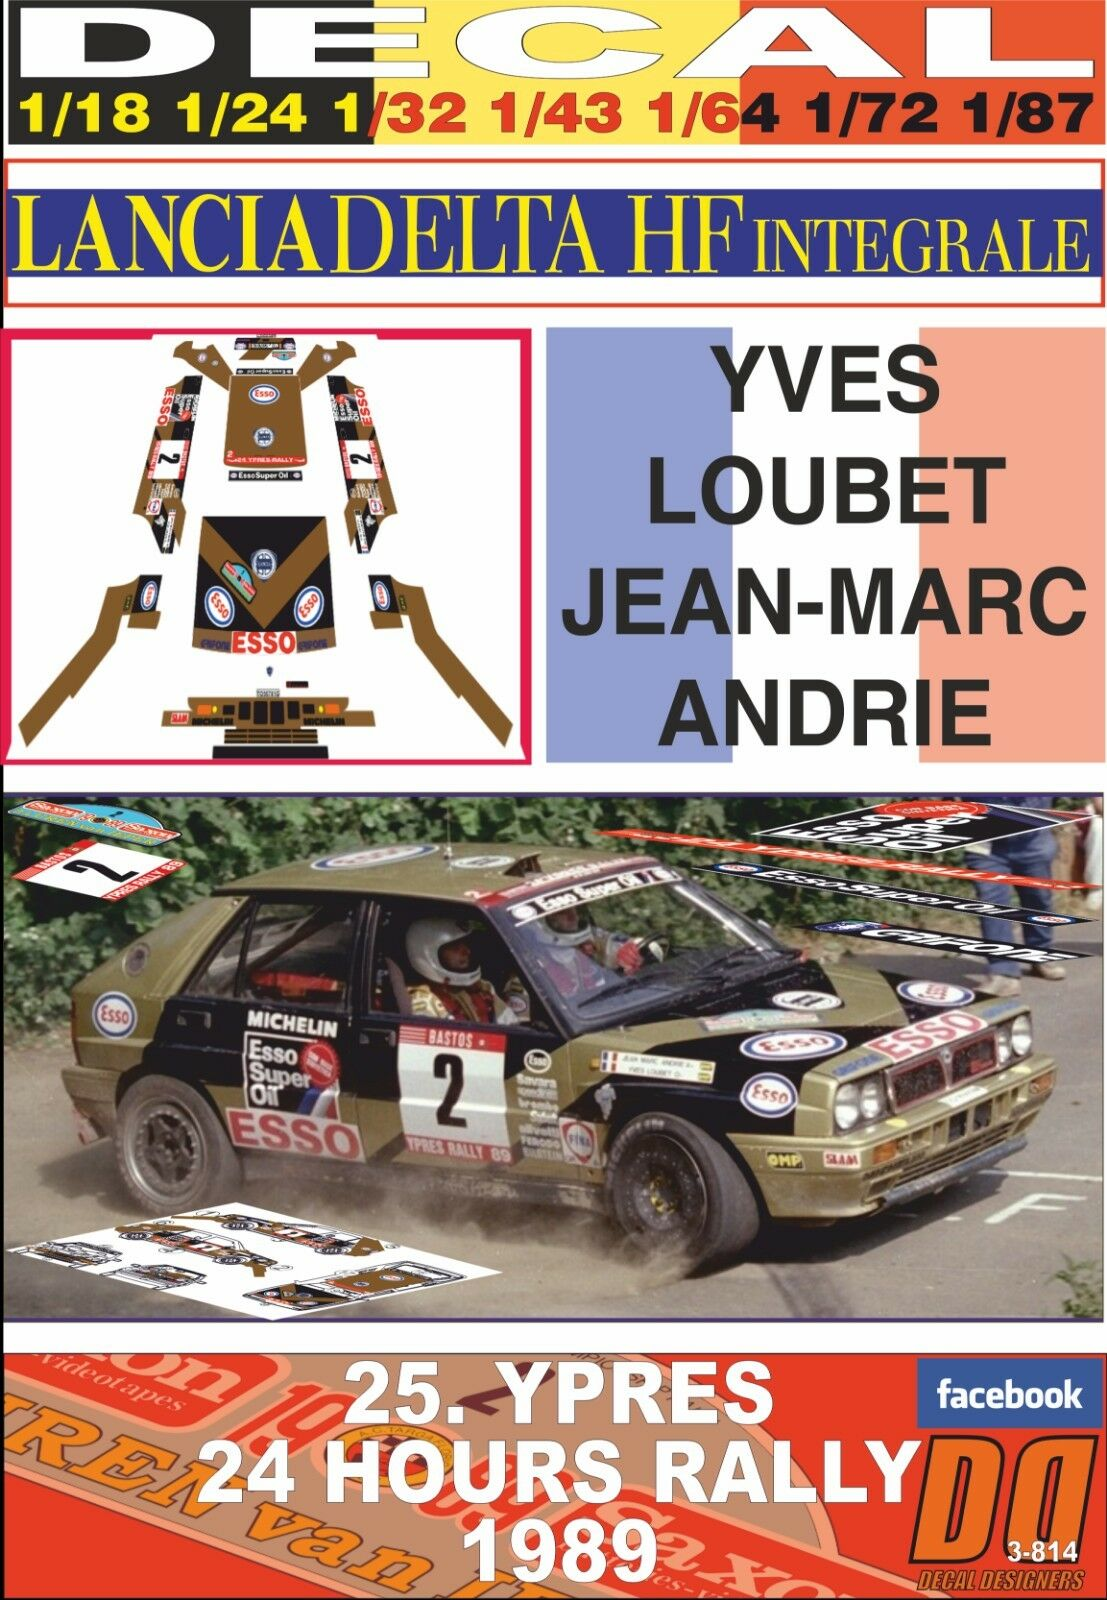 DECAL LANCIA DELTA INTEGRALE .Y.LOUBET YPRES 24 HOURS R. 1989 DnF (04)